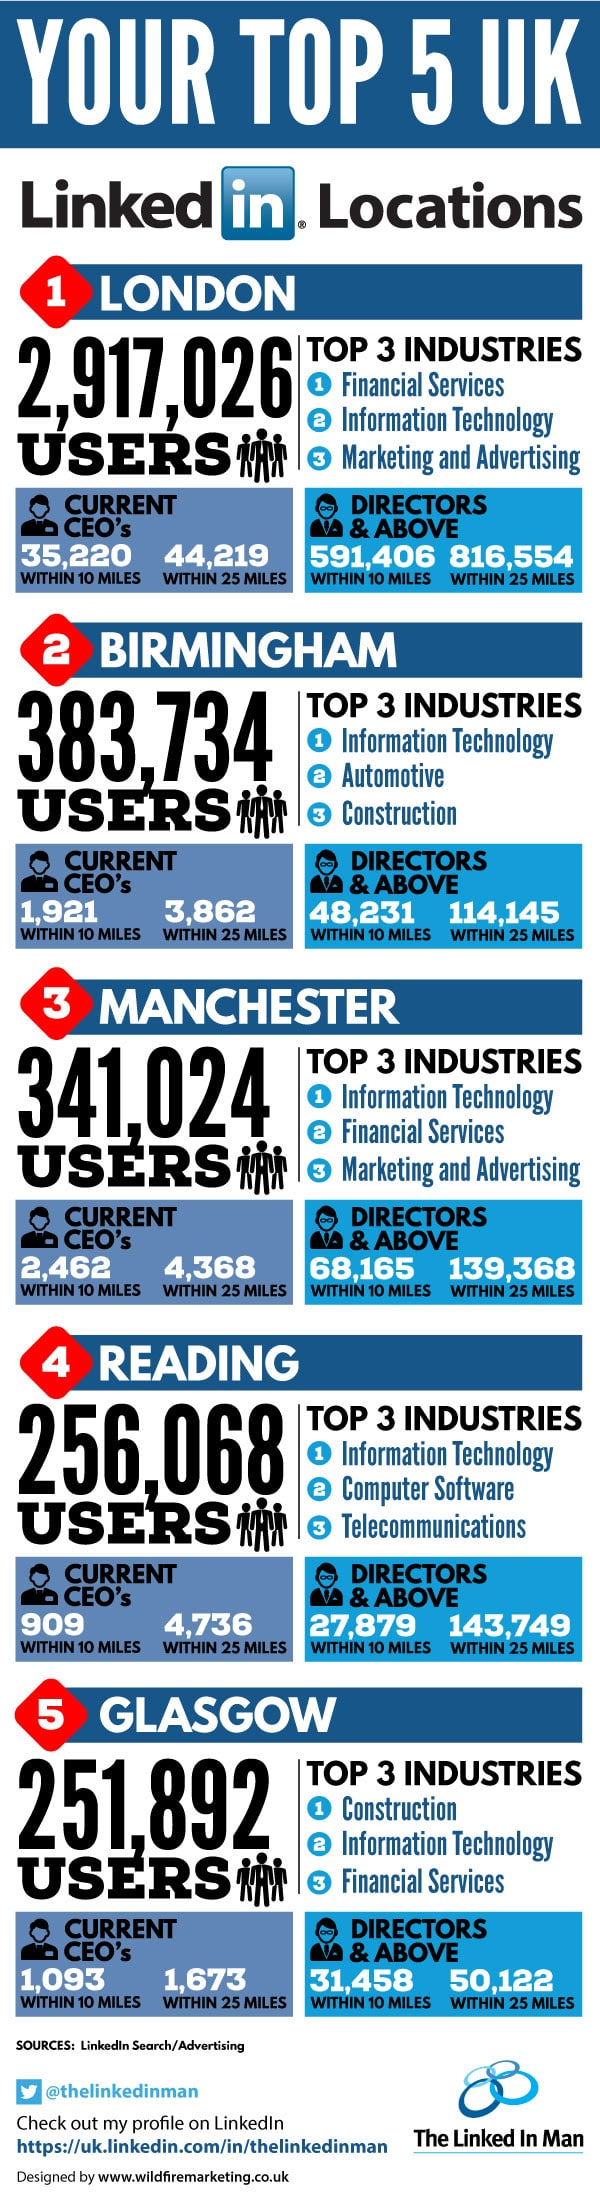 The Linked In Man - Top 5 LinkedIn locations in the UK Infographic